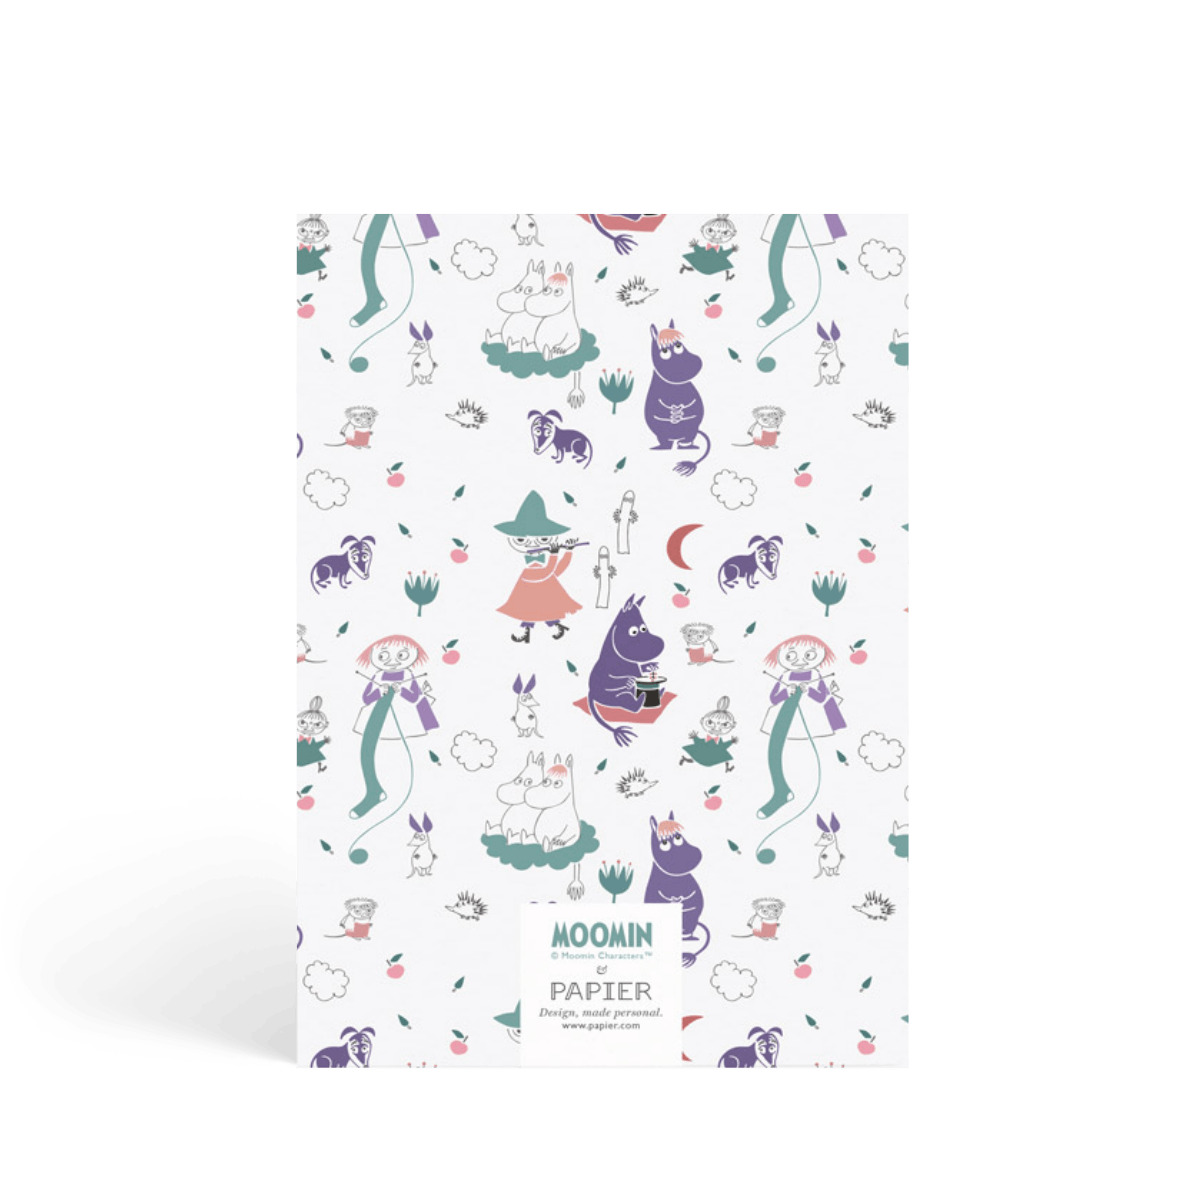 Https%3a%2f%2fwww.papier.com%2fproduct image%2f54610%2f5%2fpurple moomins 13127 arriere 1542298711.png?ixlib=rb 1.1